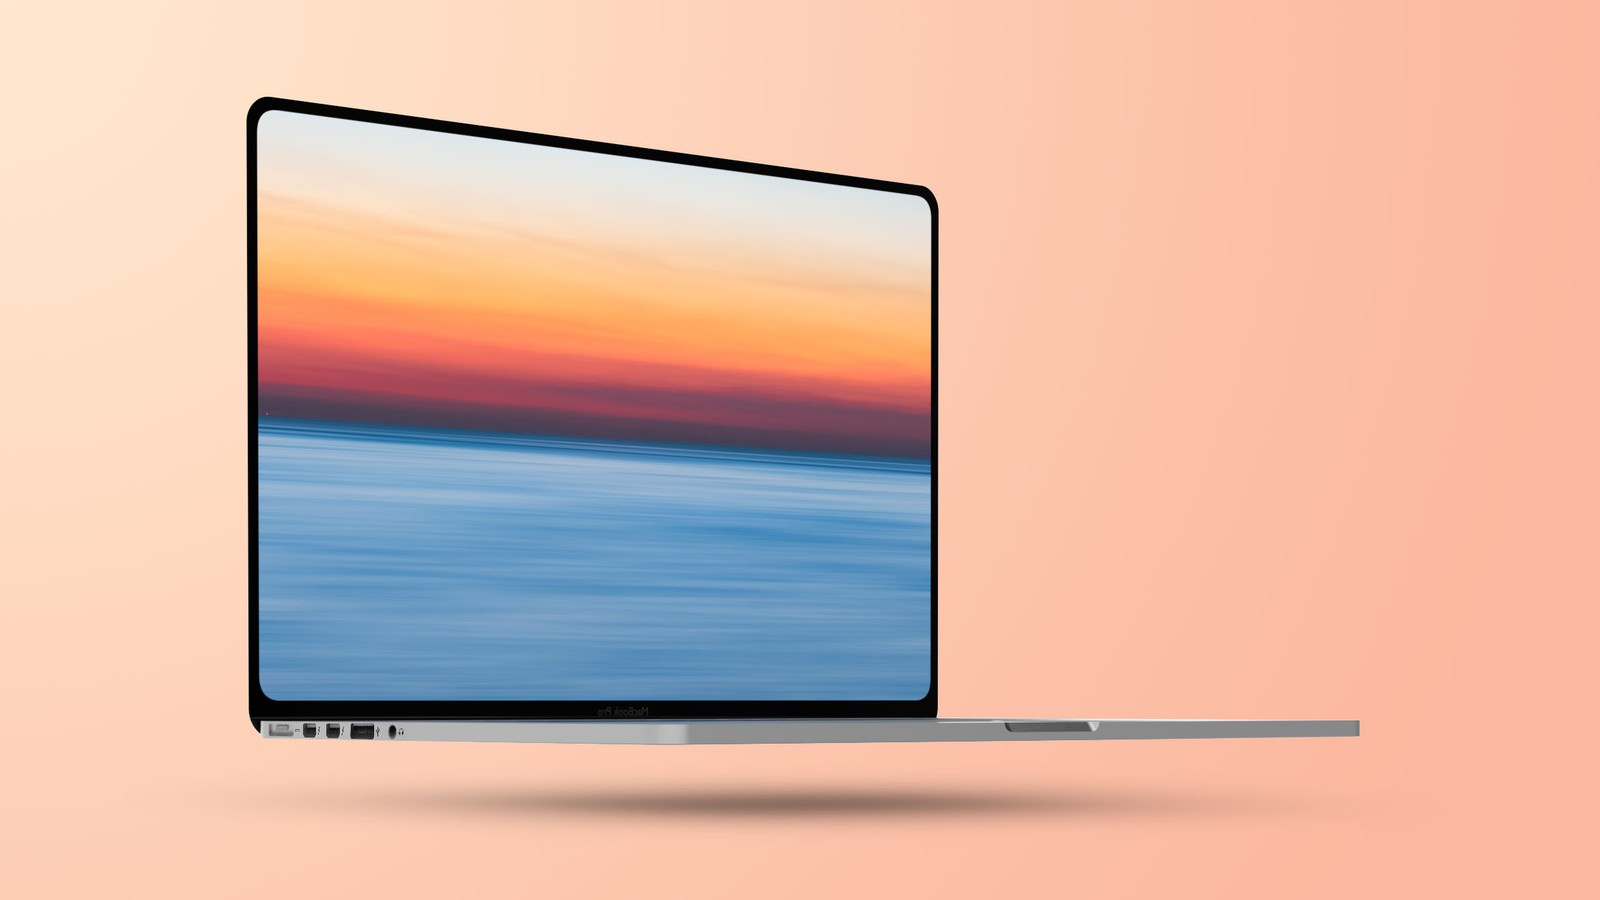 Flat 2021 MacBook Pro Mockup Feature 1 - Freshly Redesigned MacBook Pro for 2021 coming as soon as this summer with up to 64GB RAM and 10-core chip